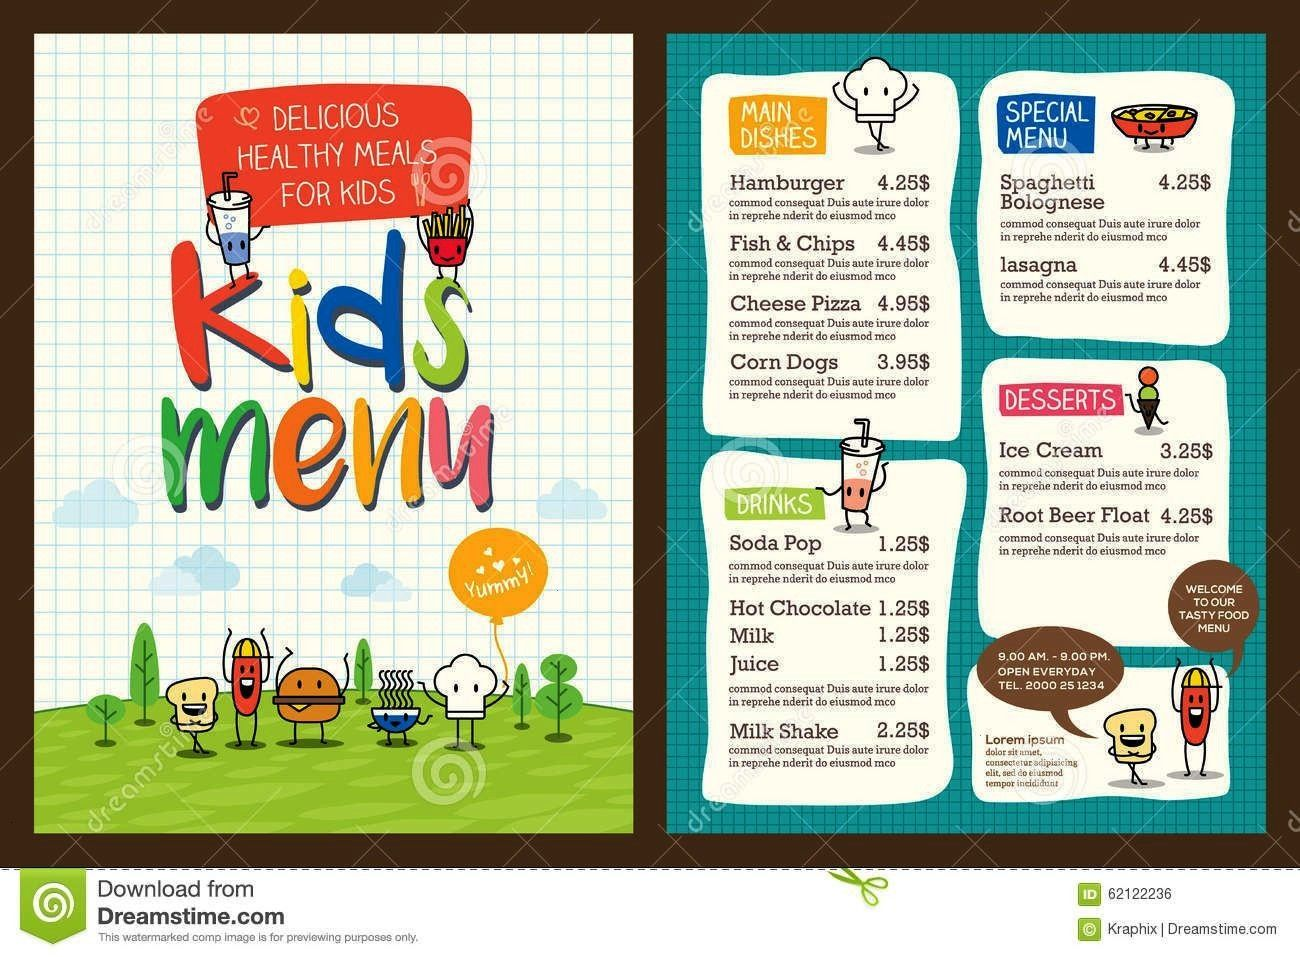 #seafoodrecipes #seafooddinner #freshseafood #illustration #seafoodmenu #colorful #template #62122236 #concept #vector #stock #fork #kids #meal #menuCute Colorful Kids Meal Menu Template Stock Vector - Illustration of fork, concept: 62122236 Cute Colorful Kids Meal Menu Template Stock Vector - Illustration of fork, concept: 62122236, Cute Colorful Kids Meal Menu Template Stock Vector - Illustration of fork, concept: 62122236,   Some Thing Your Local Librarians Would Like You To Know  Büch...